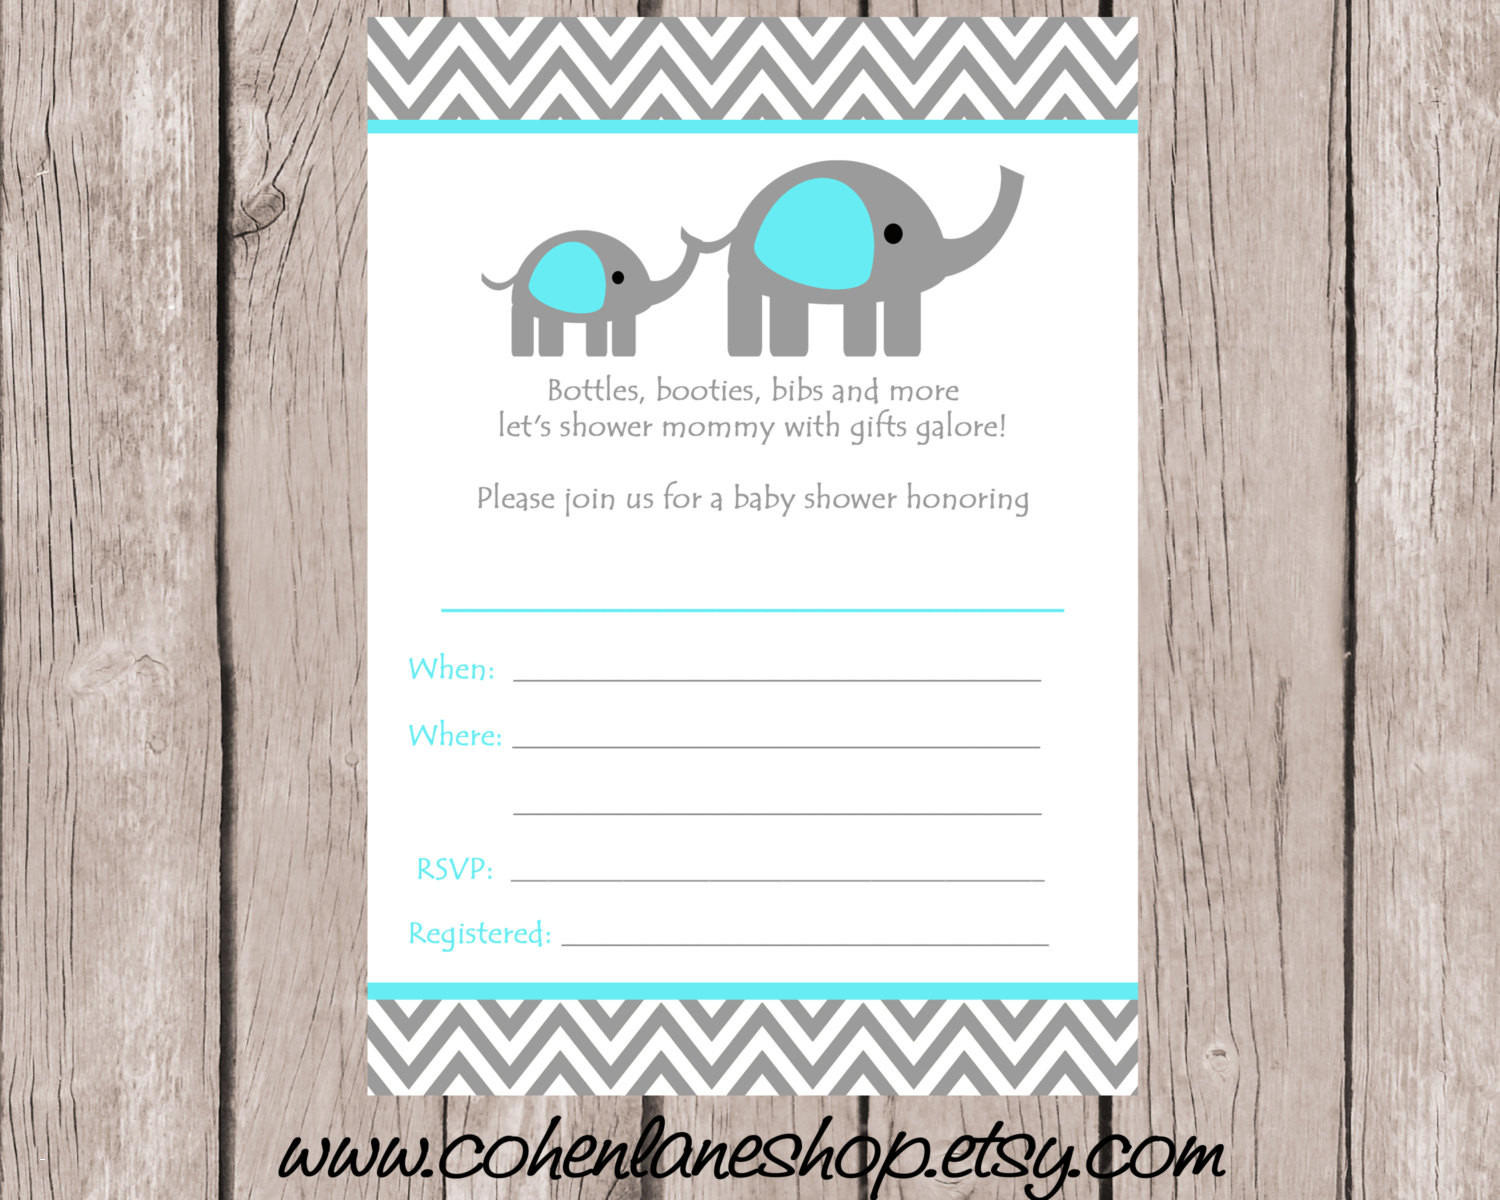 Full Size of Baby Shower:baby Boy Shower Ideas Free Printable Baby Shower Games Free Baby Shower Ideas Unique Baby Shower Decorations Baby Girl Party Plates Baby Shower Invitations For Girls Creative Baby Shower Ideas Baby Girl Themes For Bedroom